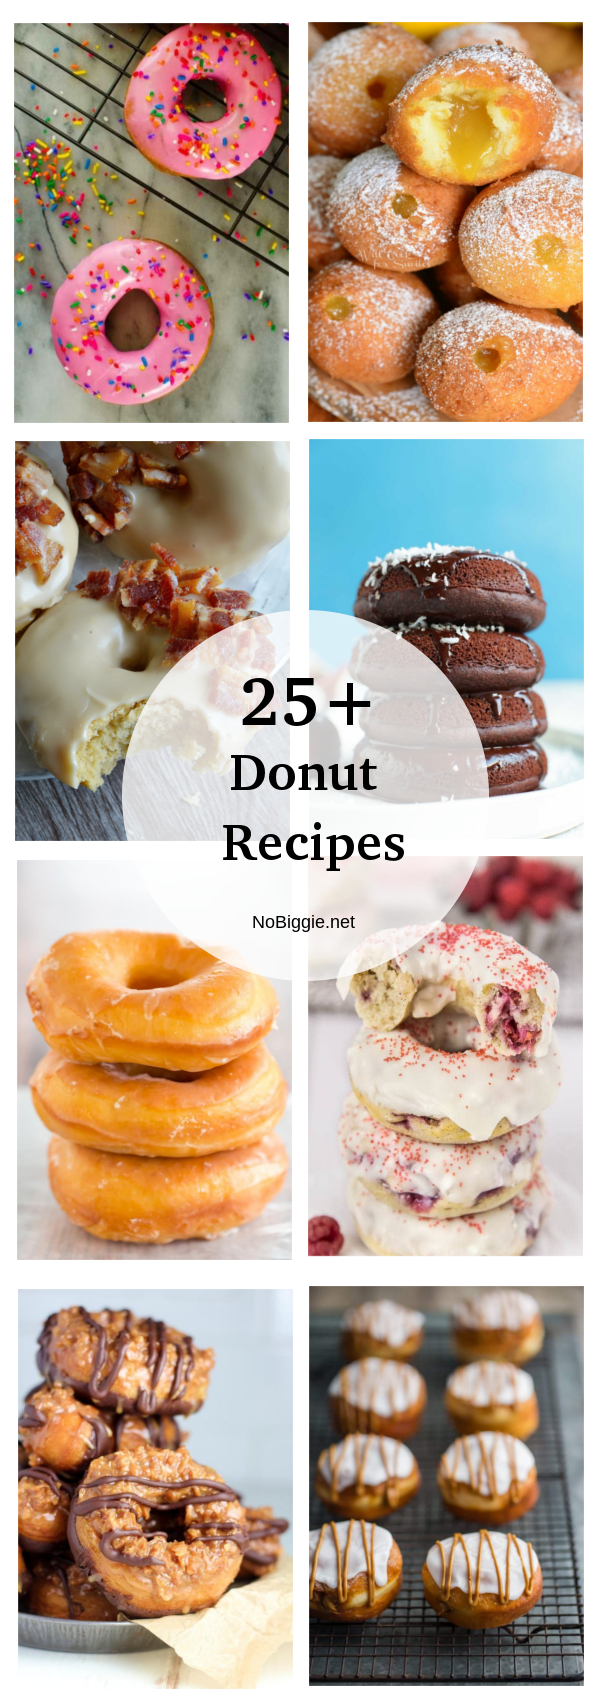 Donut Recipes! Nothing beats a delicious warm donut on a cold morning. Homemade Donuts are  a must, come take look at these yummy recipes! #nationaldonutday #donutrecipes #homemadedonuts #donuts #Doughnuts